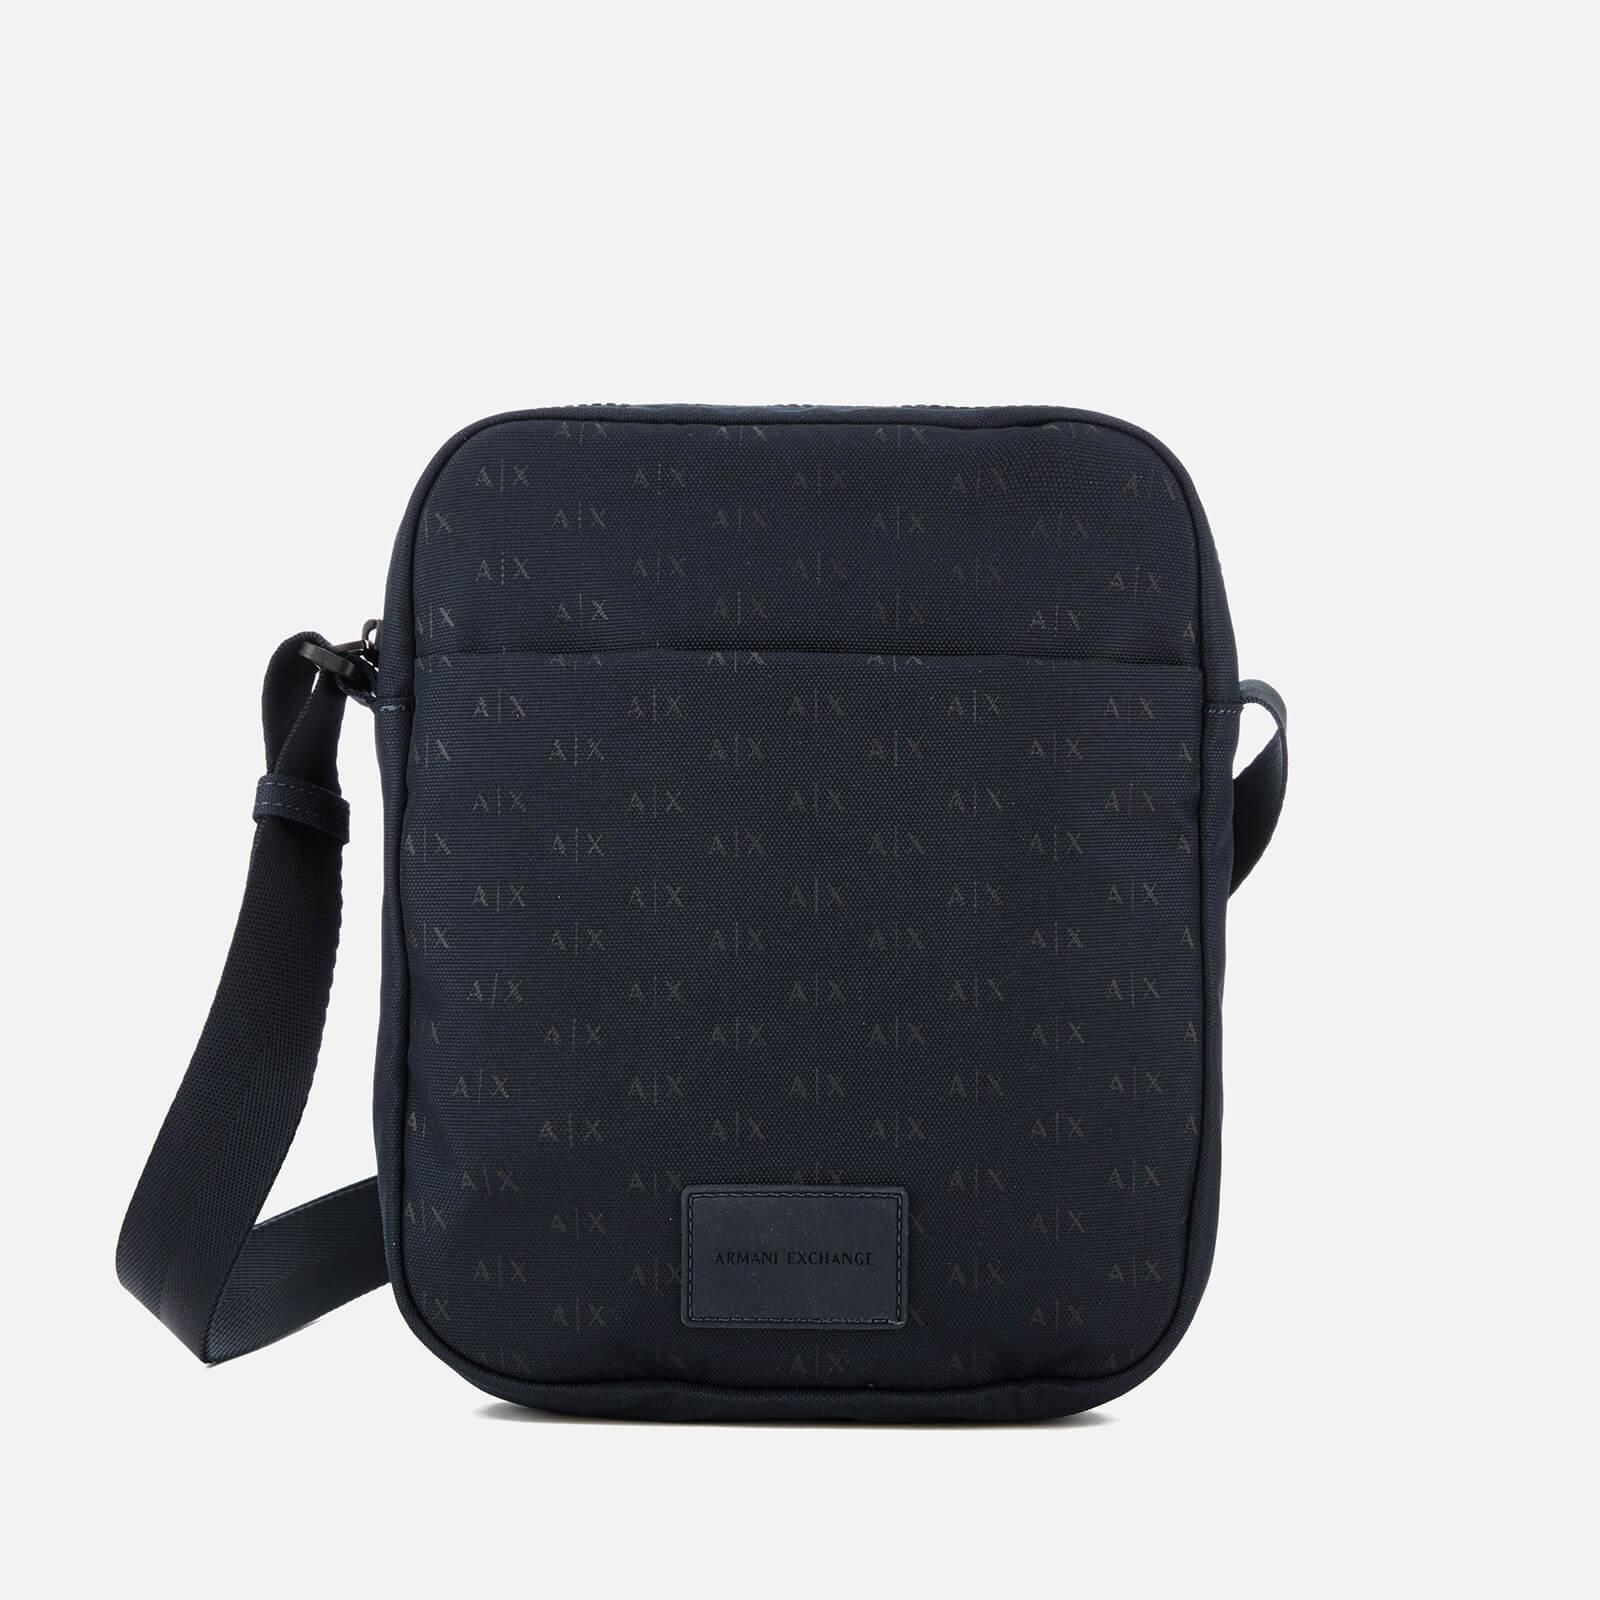 Lyst - Armani Exchange Ax All Over Logo Cross Body Bag in Blue for Men 78fd31aeb9cce